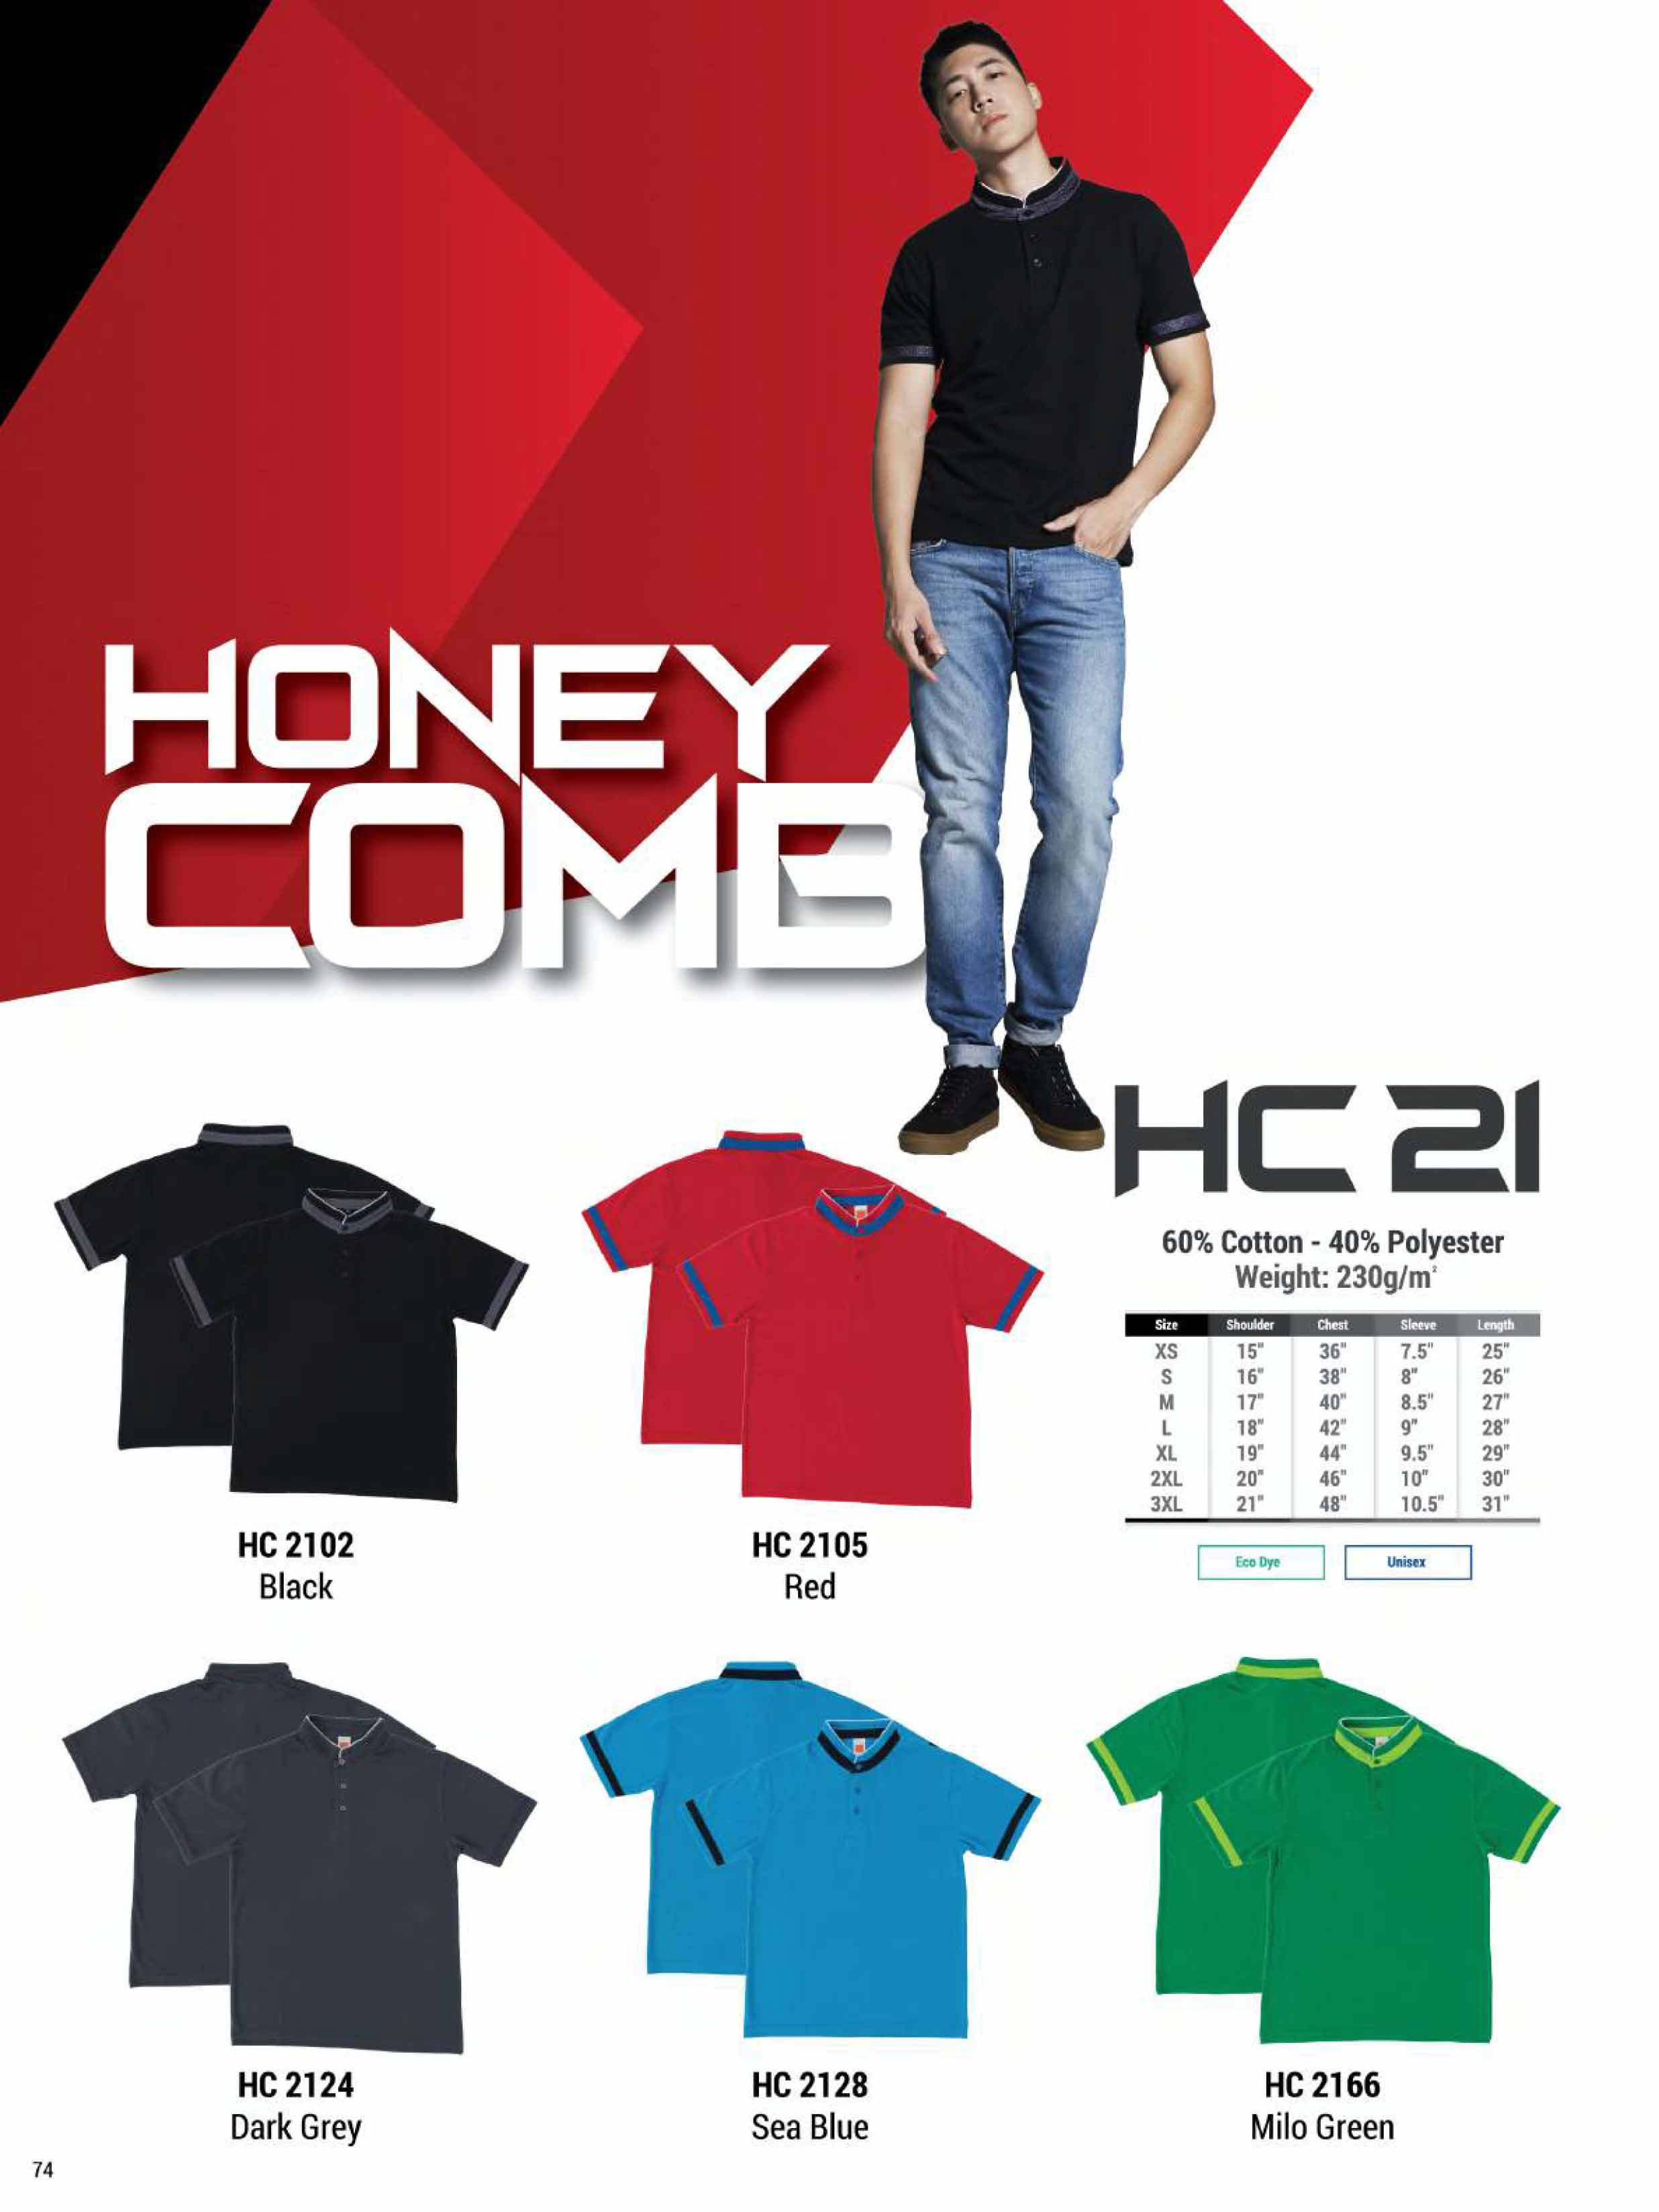 HC21 HONEYCOMB COTTON POLO T-SHIRT